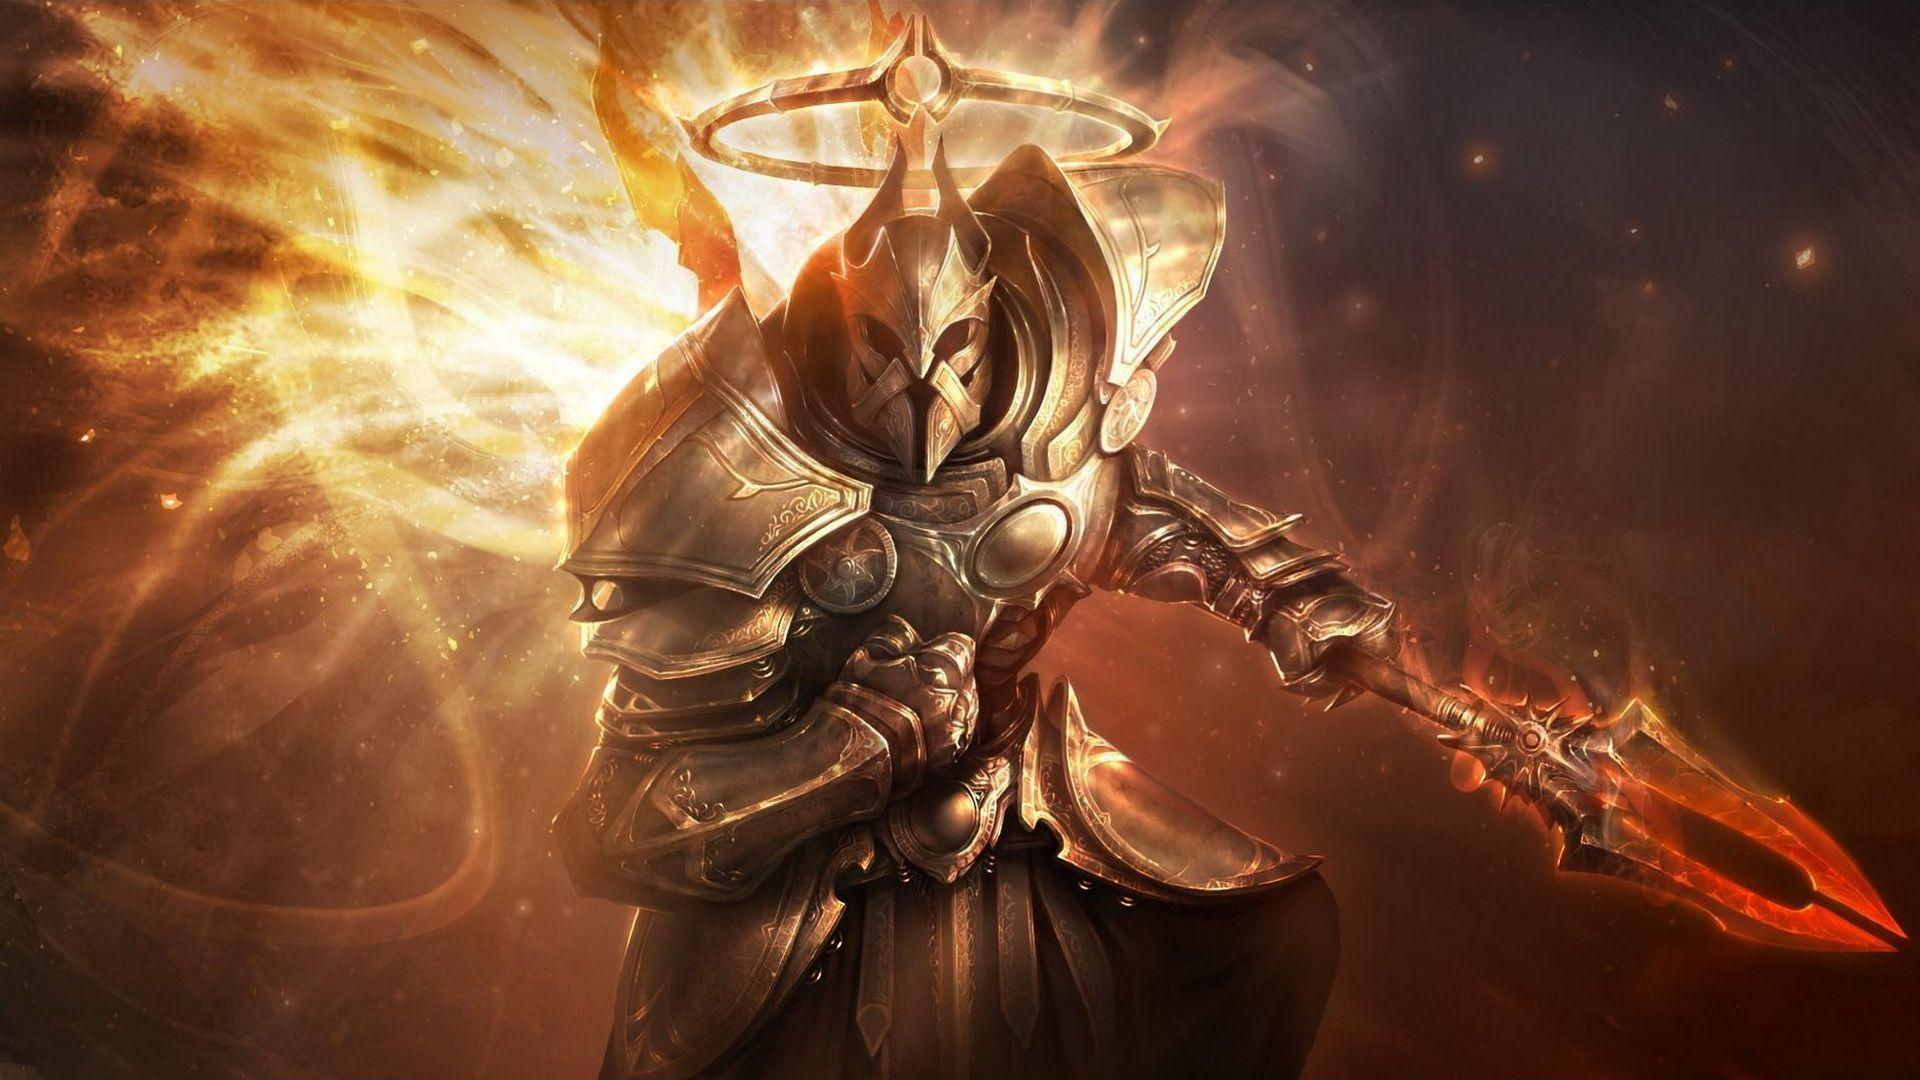 Diablo 3 | Wallpaper Gamer